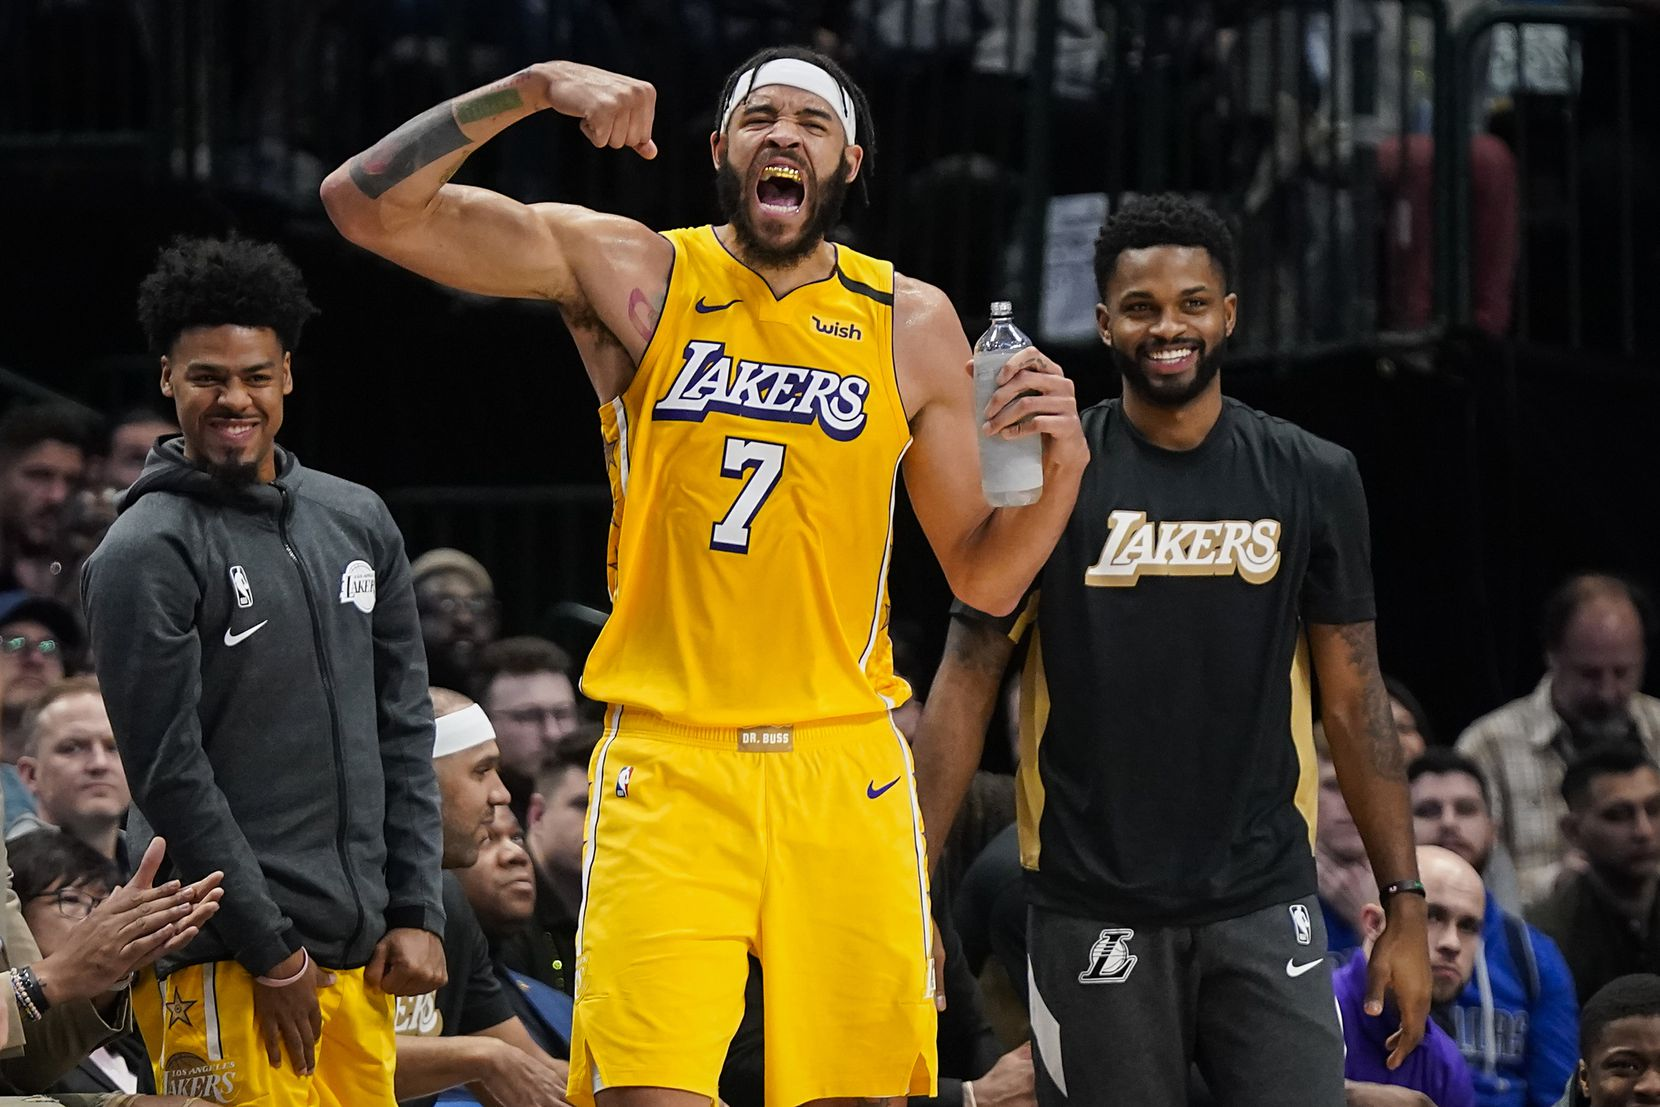 Los Angeles Lakers center JaVale McGee (7) celebrates a Lakers basket during the first half of an NBA basketball game against the Dallas Mavericks at American Airlines Center on Friday, Jan. 10, 2020, in Dallas.